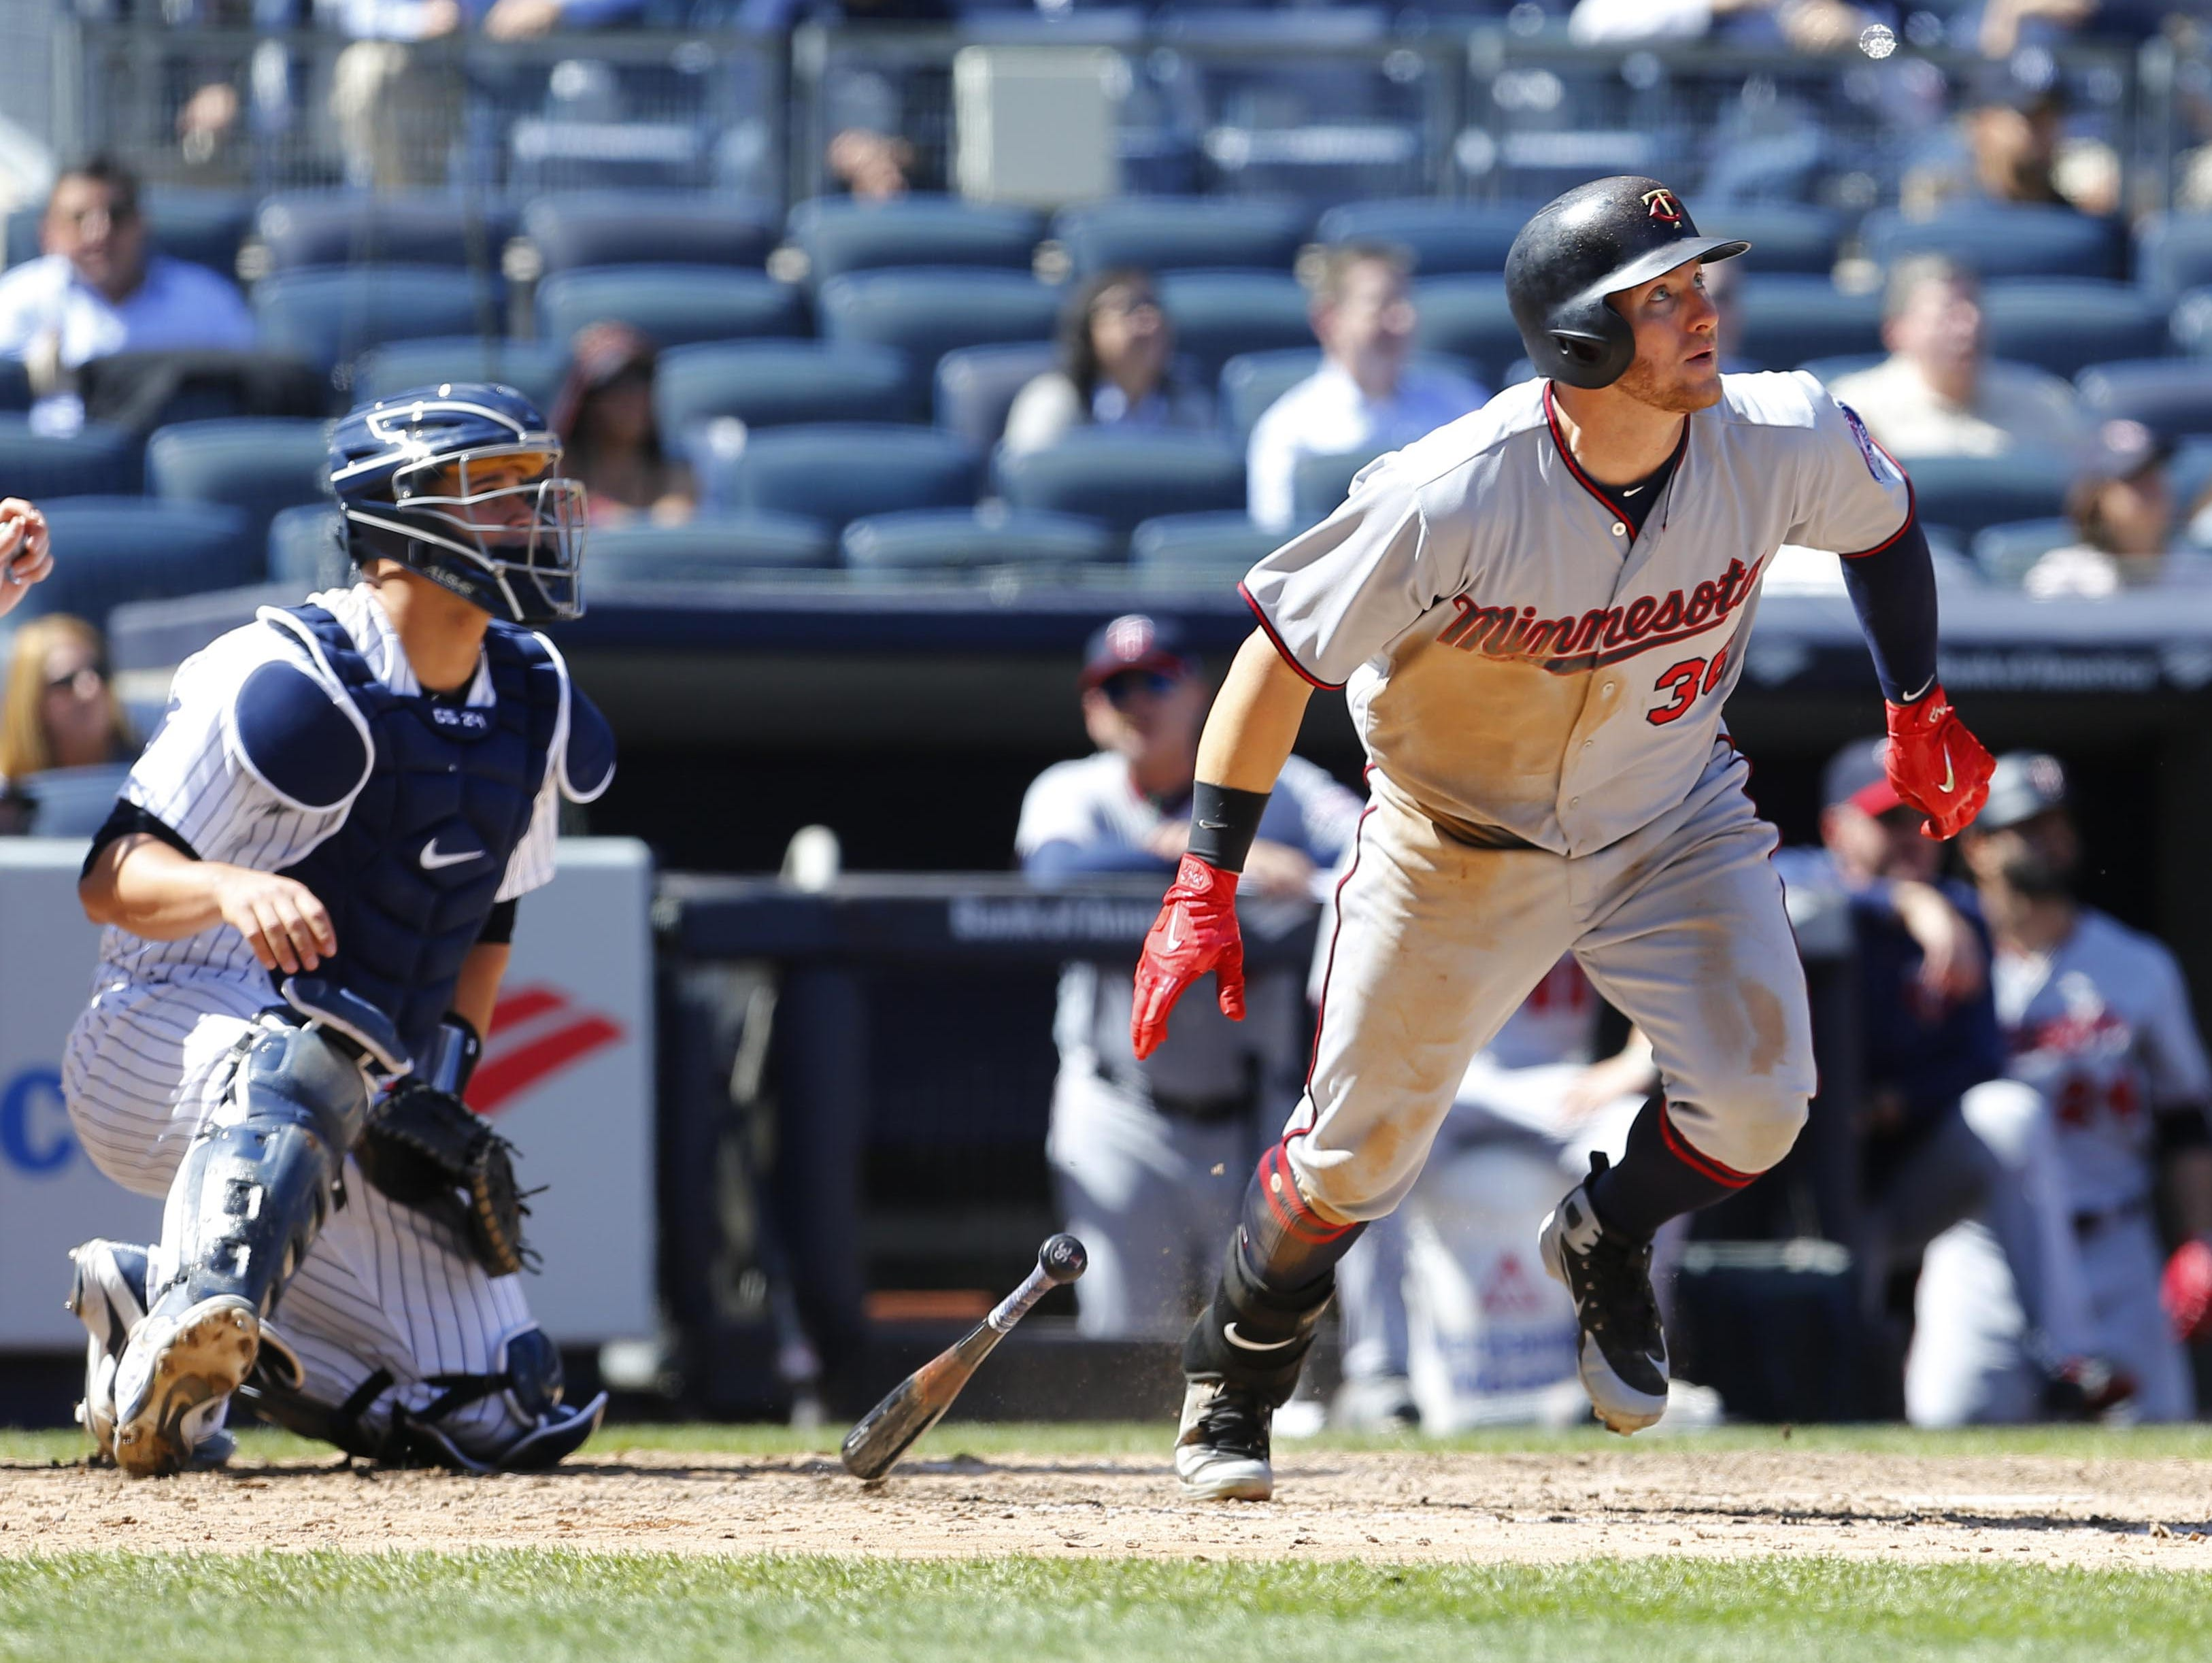 Win a family four pack of tickets to the Twins vs Indians game 6/2 at Target Field. Enter 5/1-5/20.